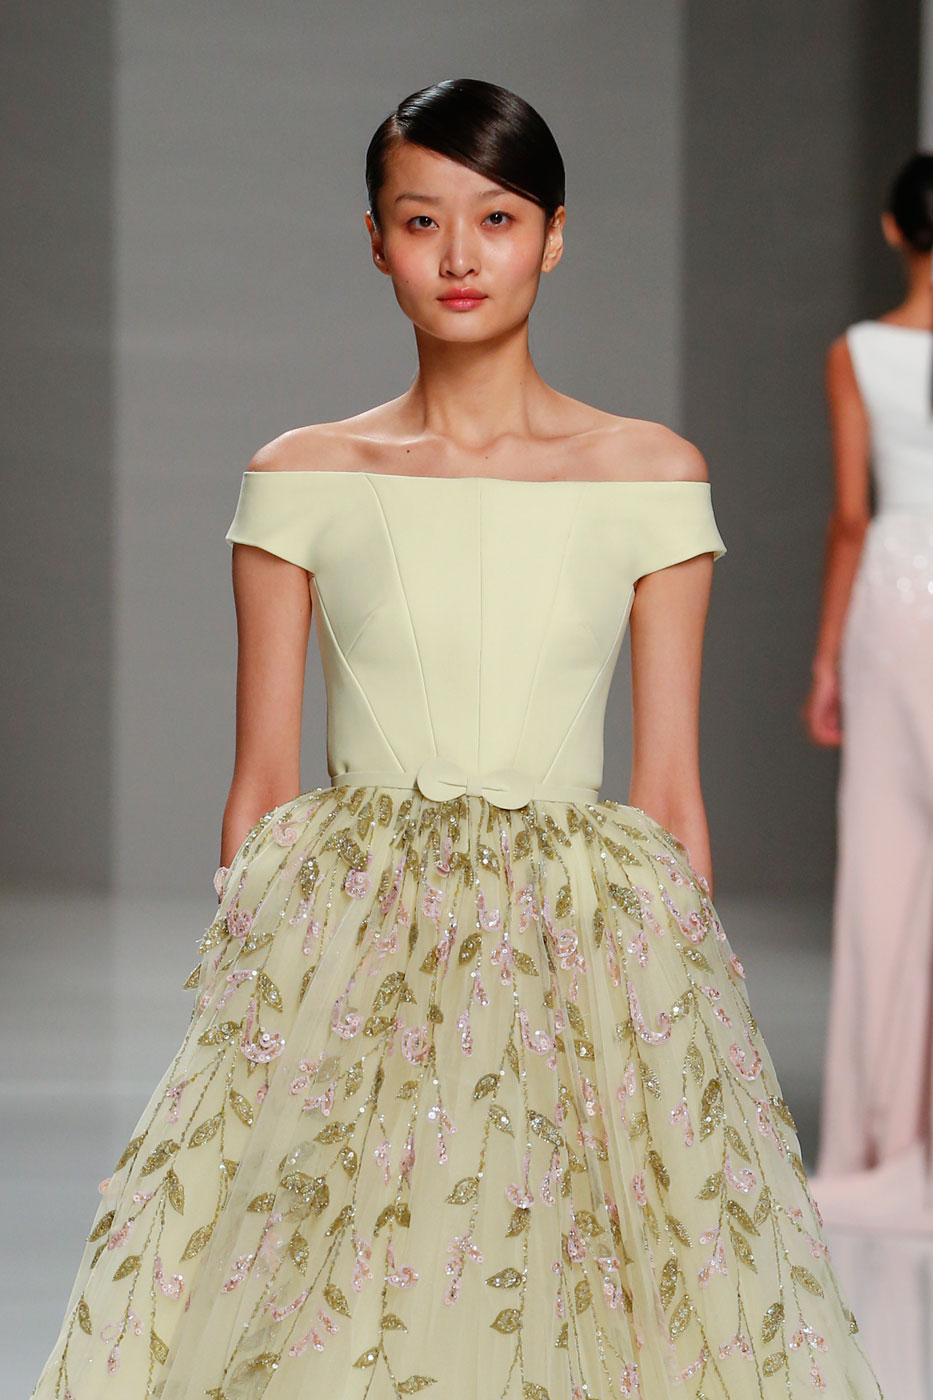 Georges-Hobeika-fashion-runway-show-haute-couture-paris-spring-2015-the-impression-74